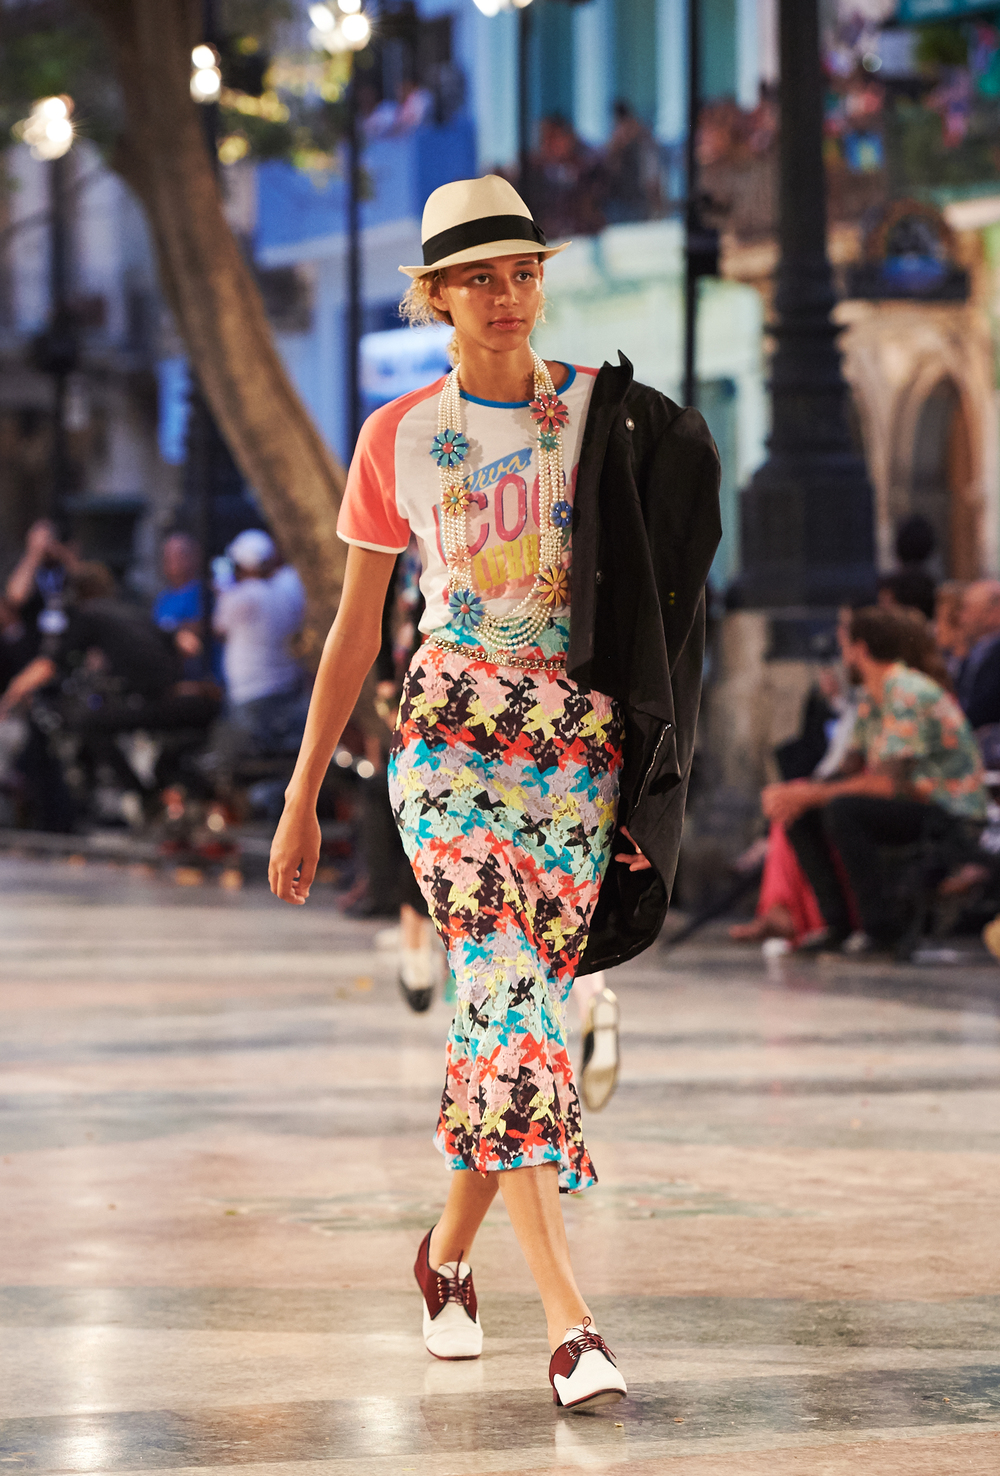 07_Cruise 2016-17 collection - Show pictures by Olivier Saillant - Look 69.jpg